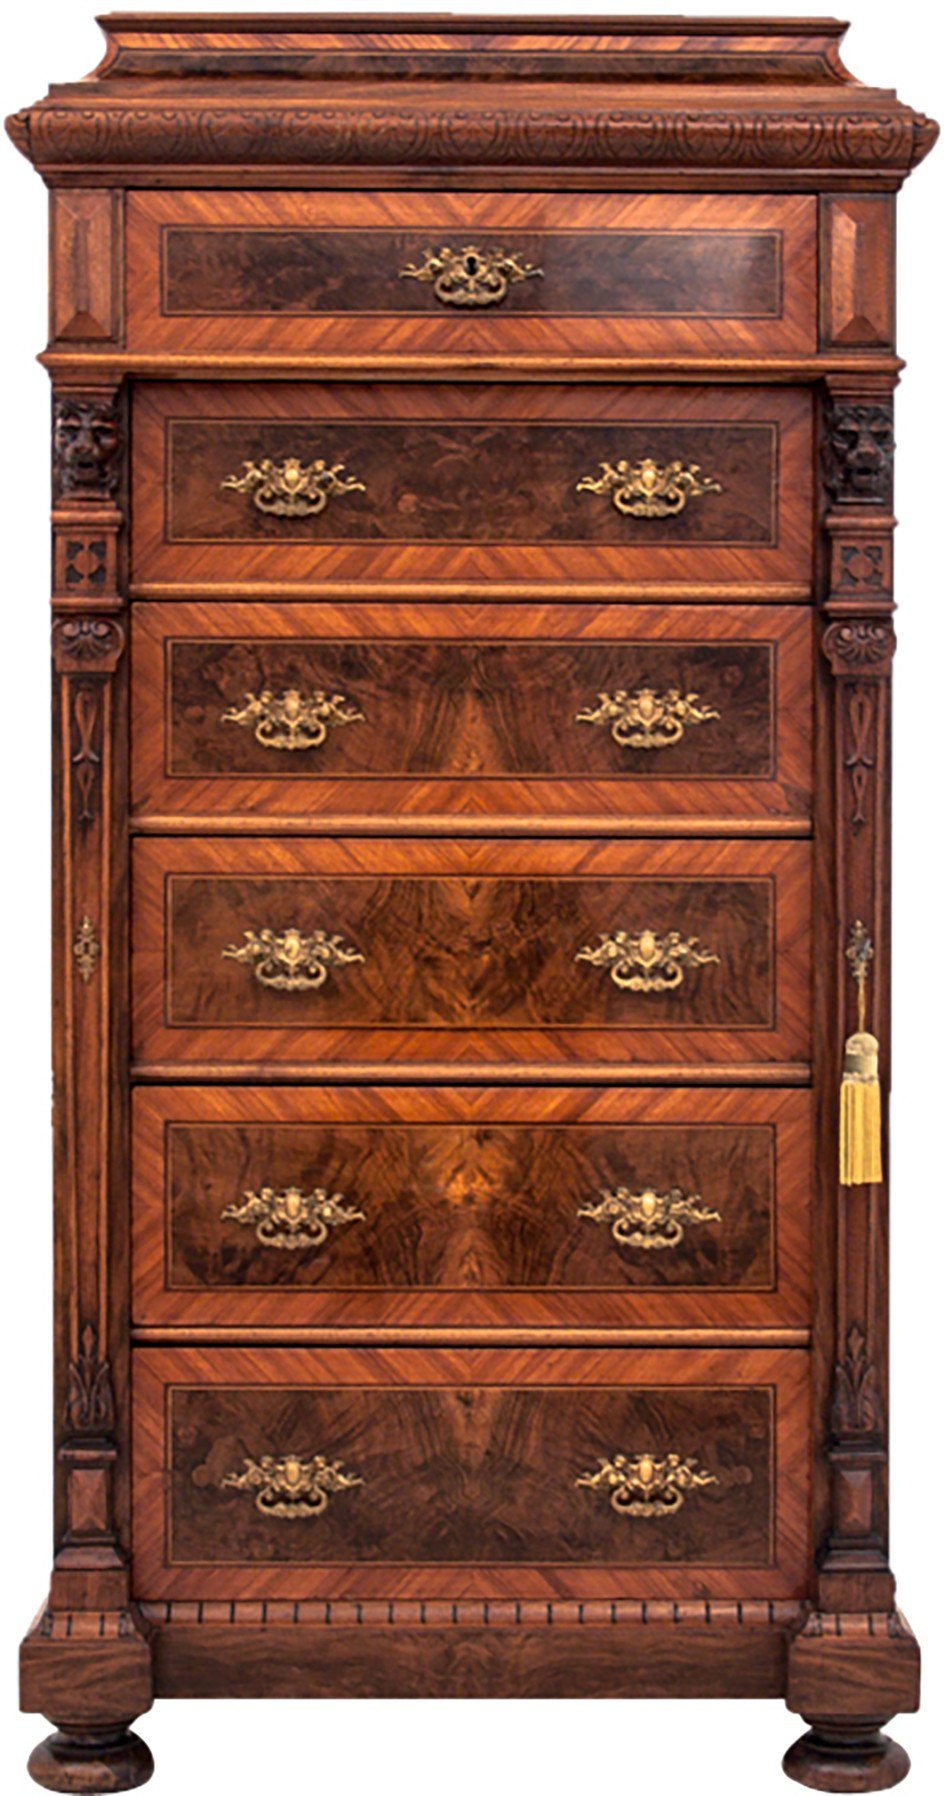 Chest of Drawers, 19th C.